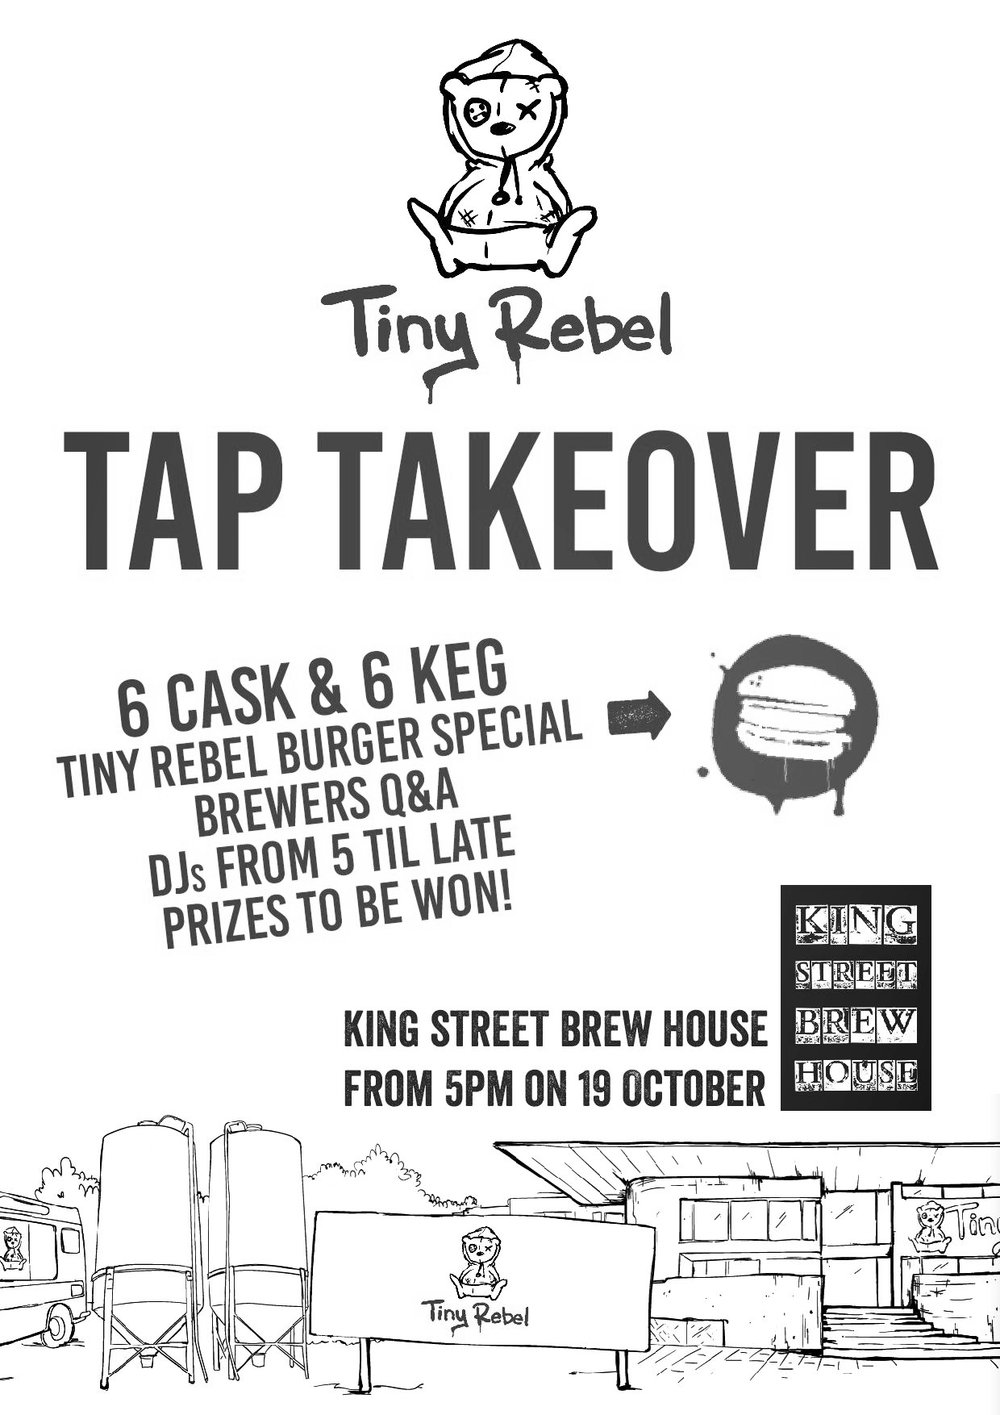 King Street Brewhouse - Tiny Rebel tap takeover.jpg